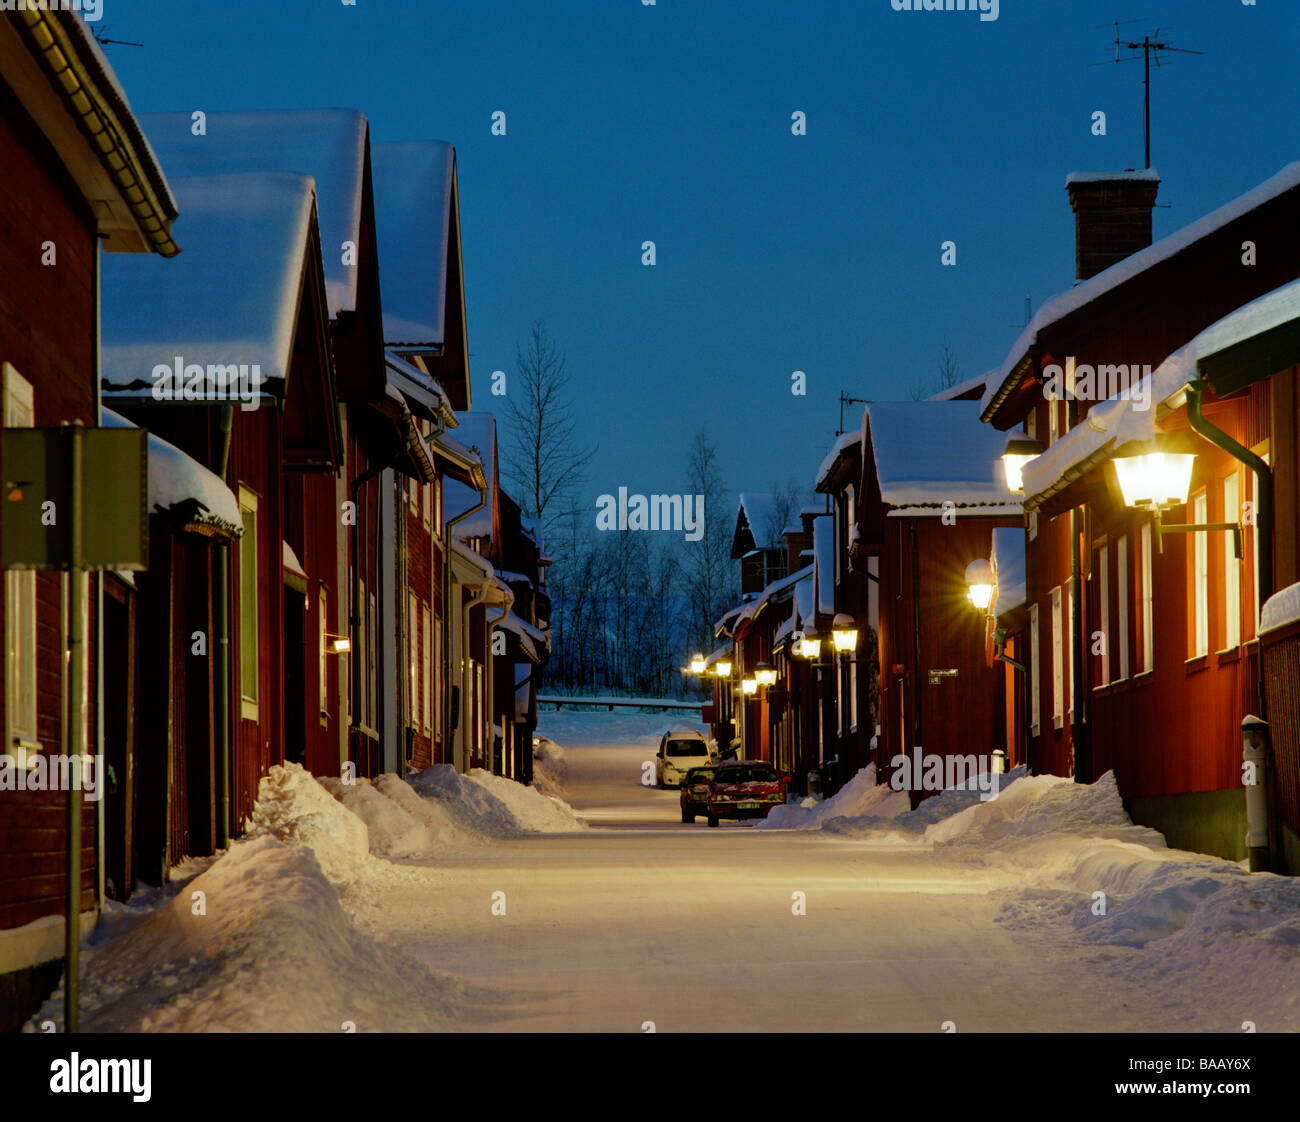 Red cottages a winter night in Dalarna, Sweden. - Stock Image